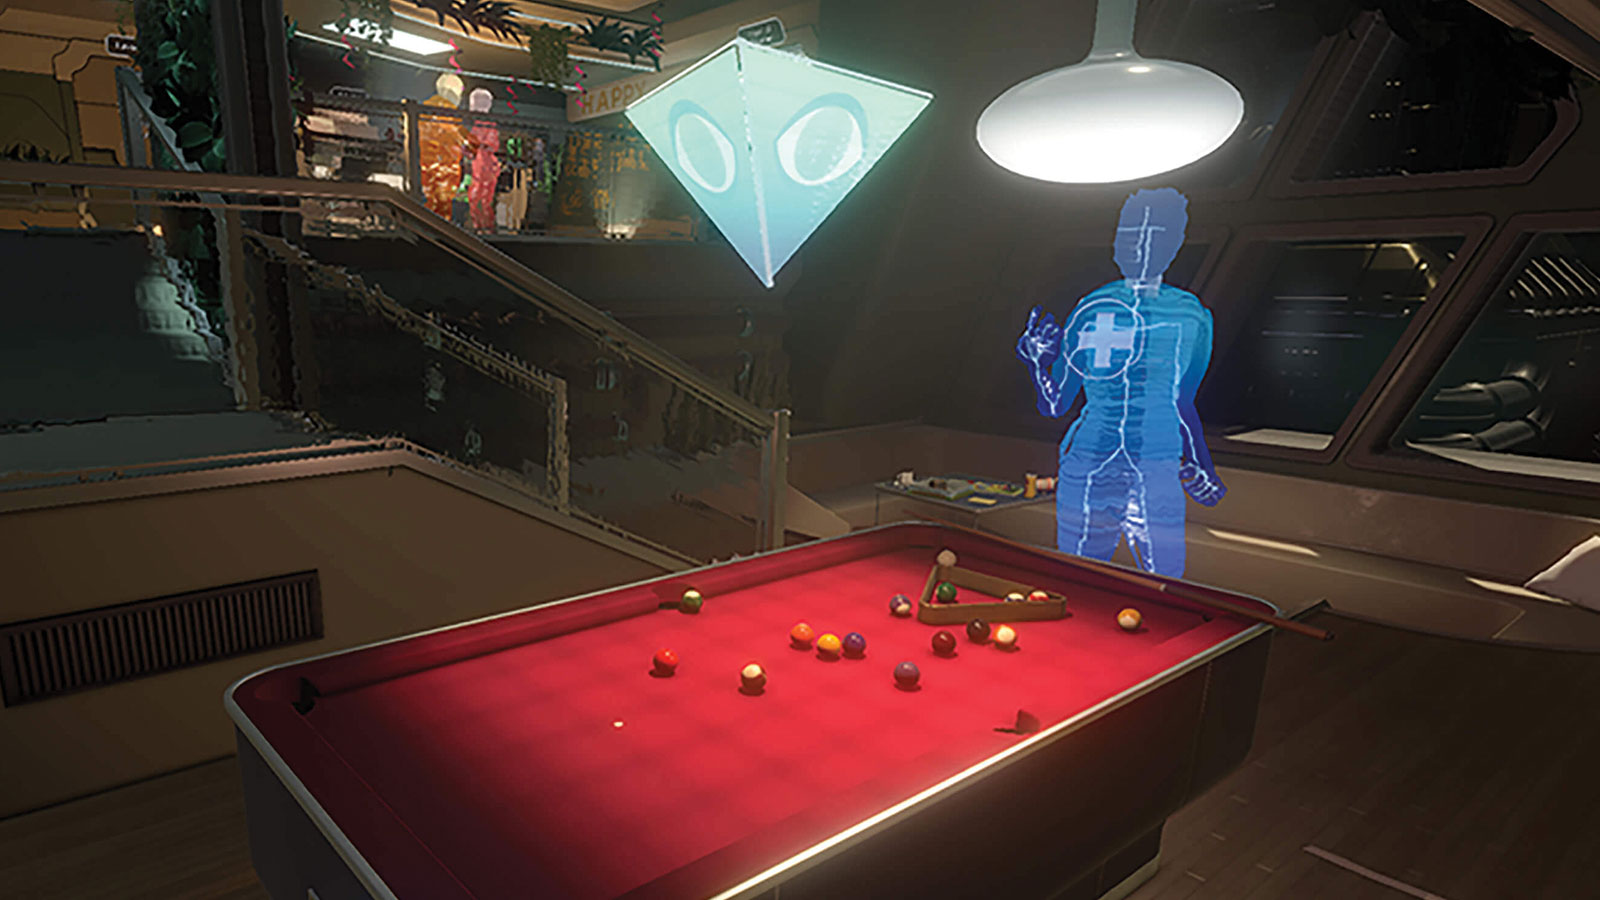 A faceless character plays pool in this screenshot from the Fullbright's Company's game Tacoma